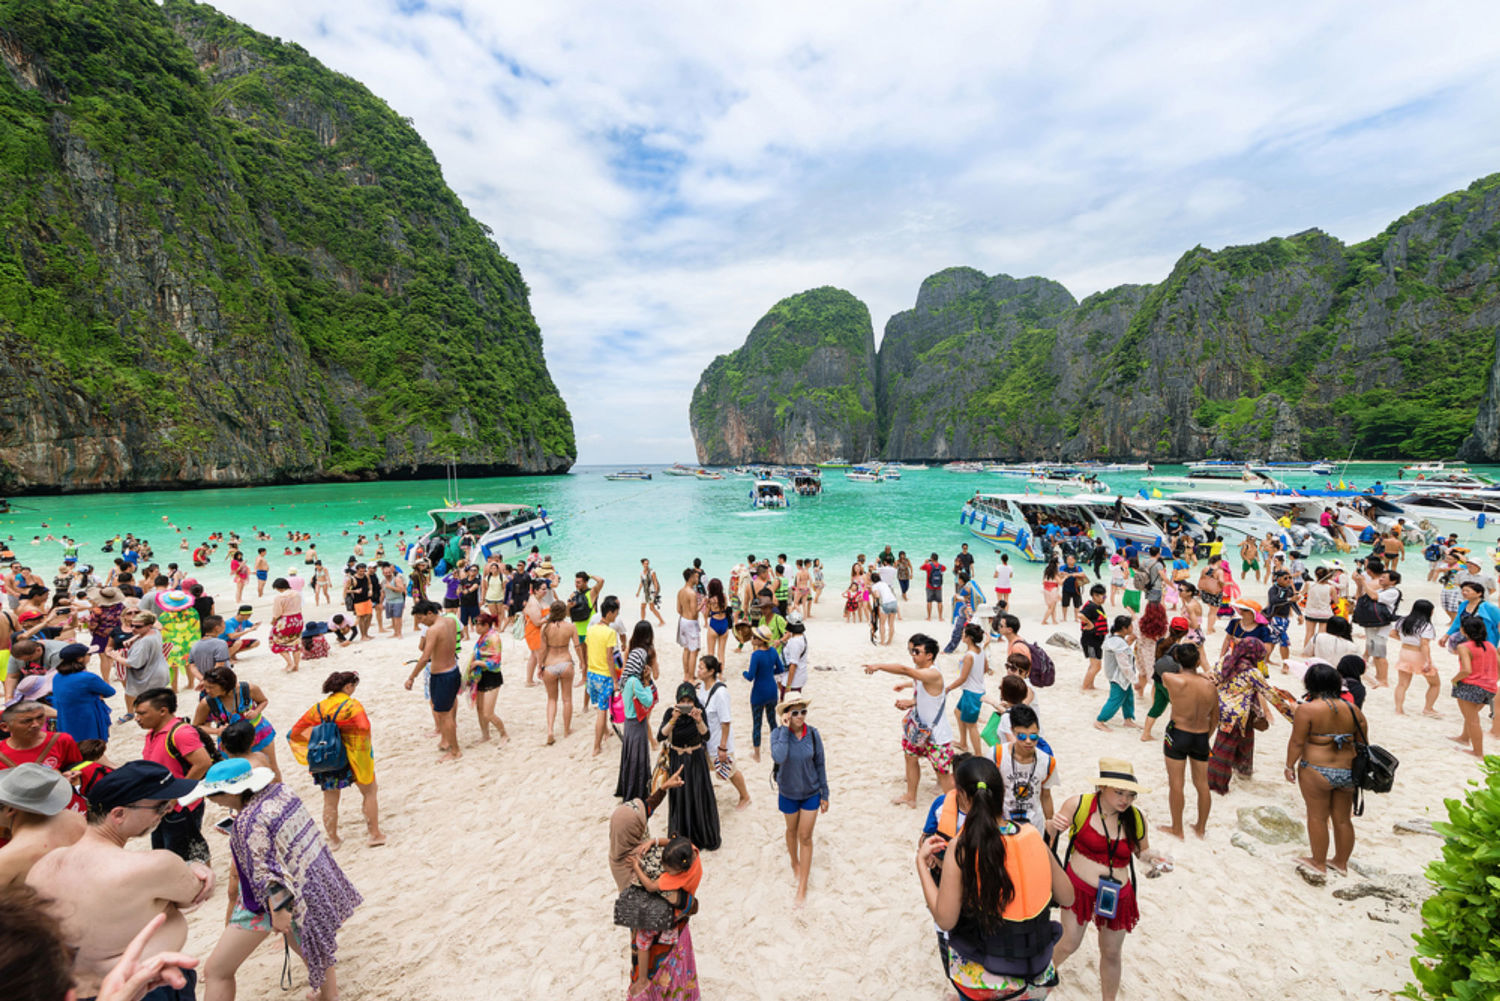 2Millions of Chinese Tourists should travel to Island this year